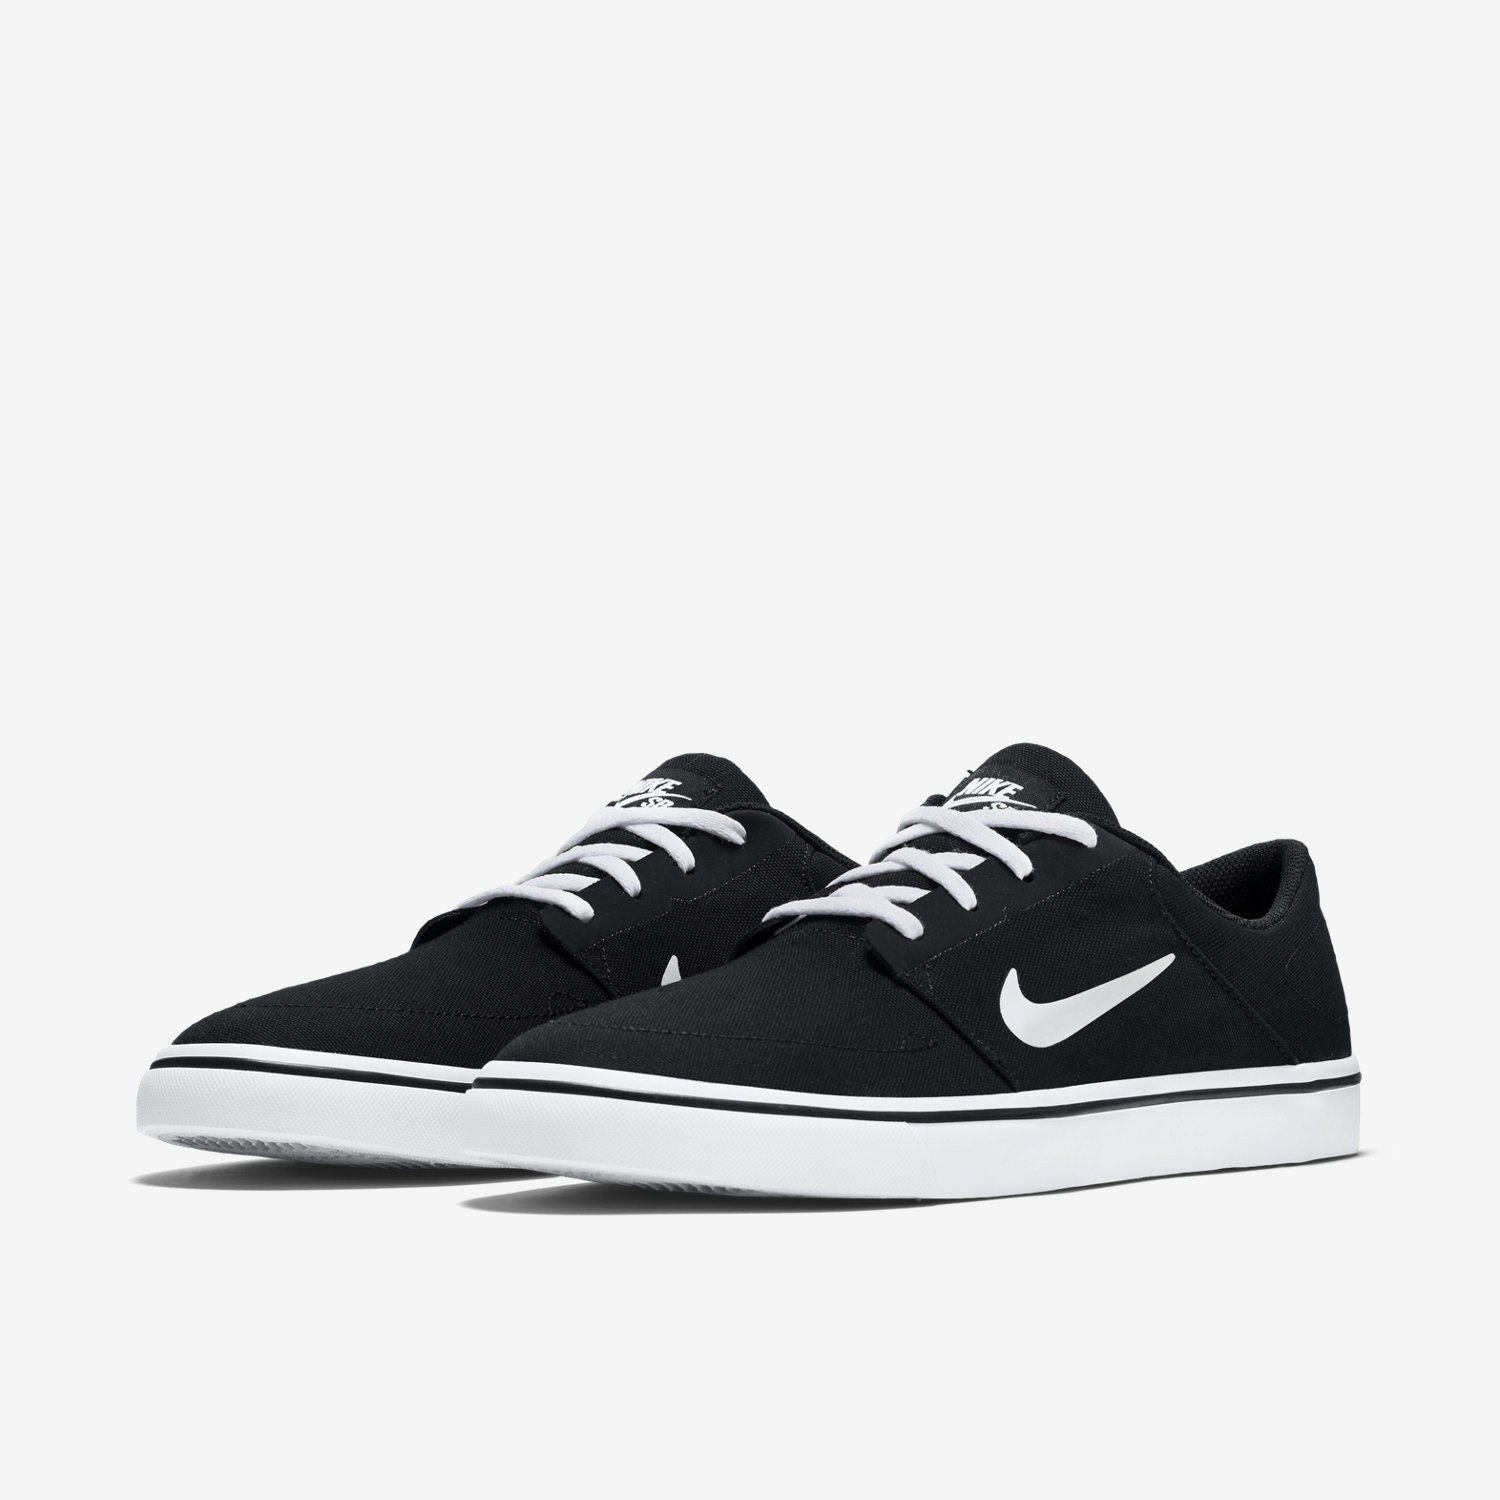 8a55d25dcf8506 ... usa nike 723874 003 mens sb portmore canvas jordan black white skate  shoe jordan canvas b24708